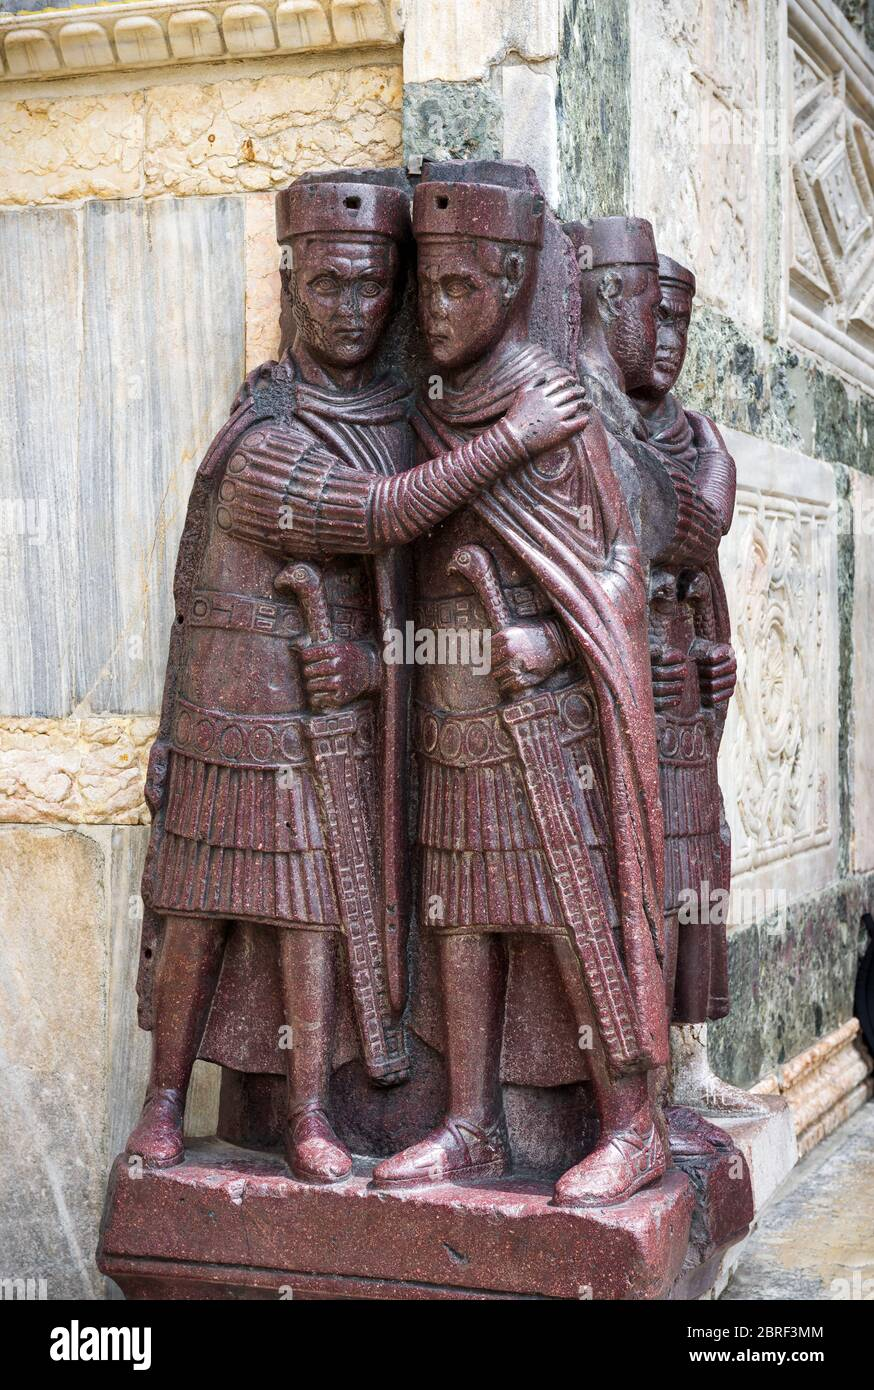 The ancient Portrait of the Four Tetrarchs by the St Mark`s Square in Venice, Italy. It is a porphyry sculpture group of Roman emperors dating from ar Stock Photo